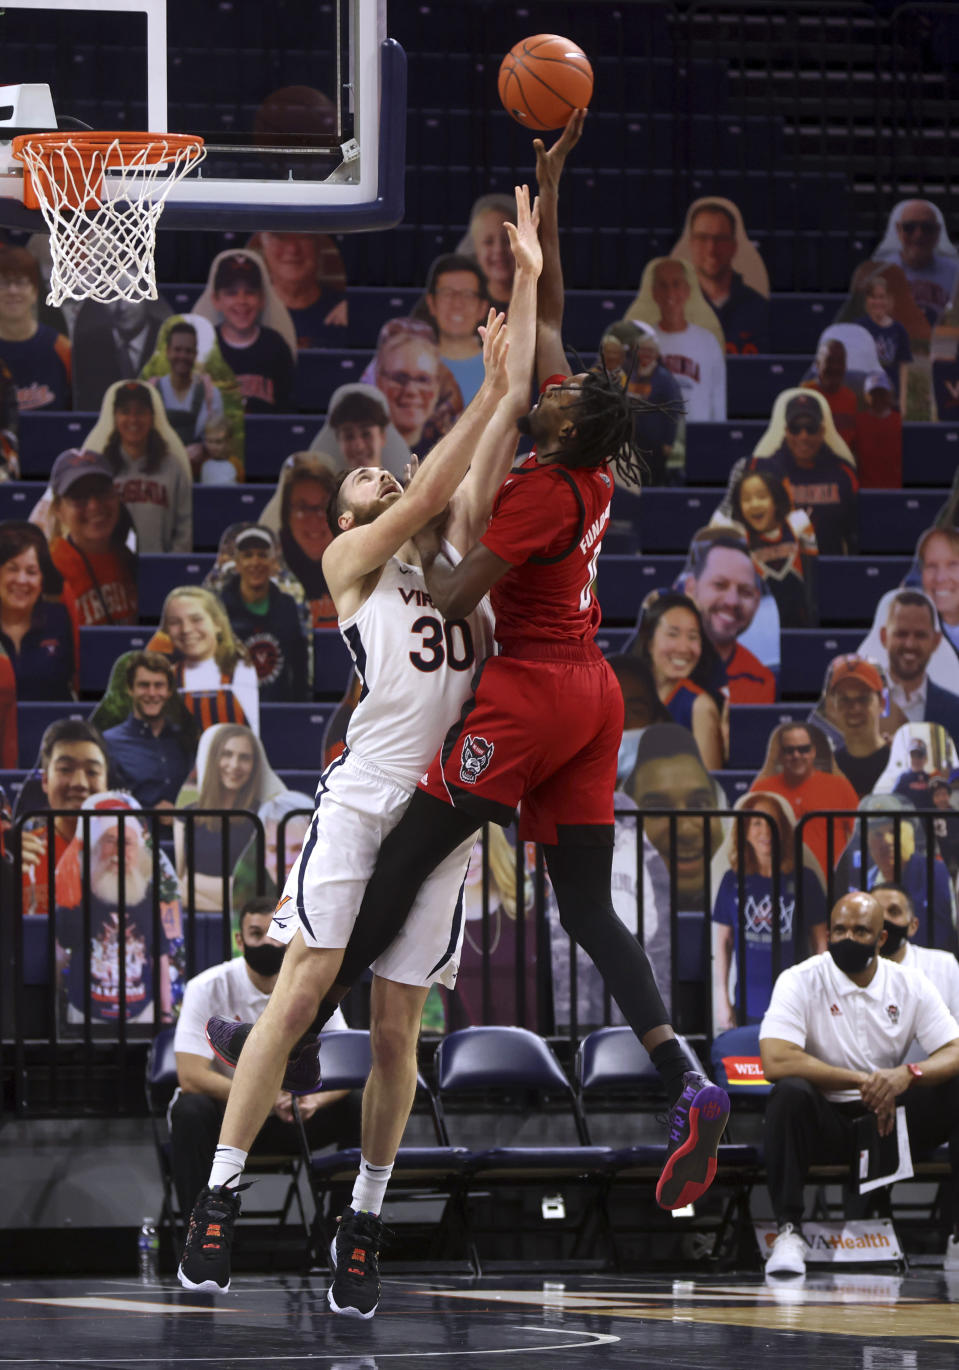 North Carolina State forward DJ Funderburk (0) is fouled by Virginia forward Jay Huff (30) during an NCAA college basketball game Wednesday, Feb. 24, 2021, in Charlottesville, Va. (Andrew Shurtleff/The Daily Progress via AP, Pool)